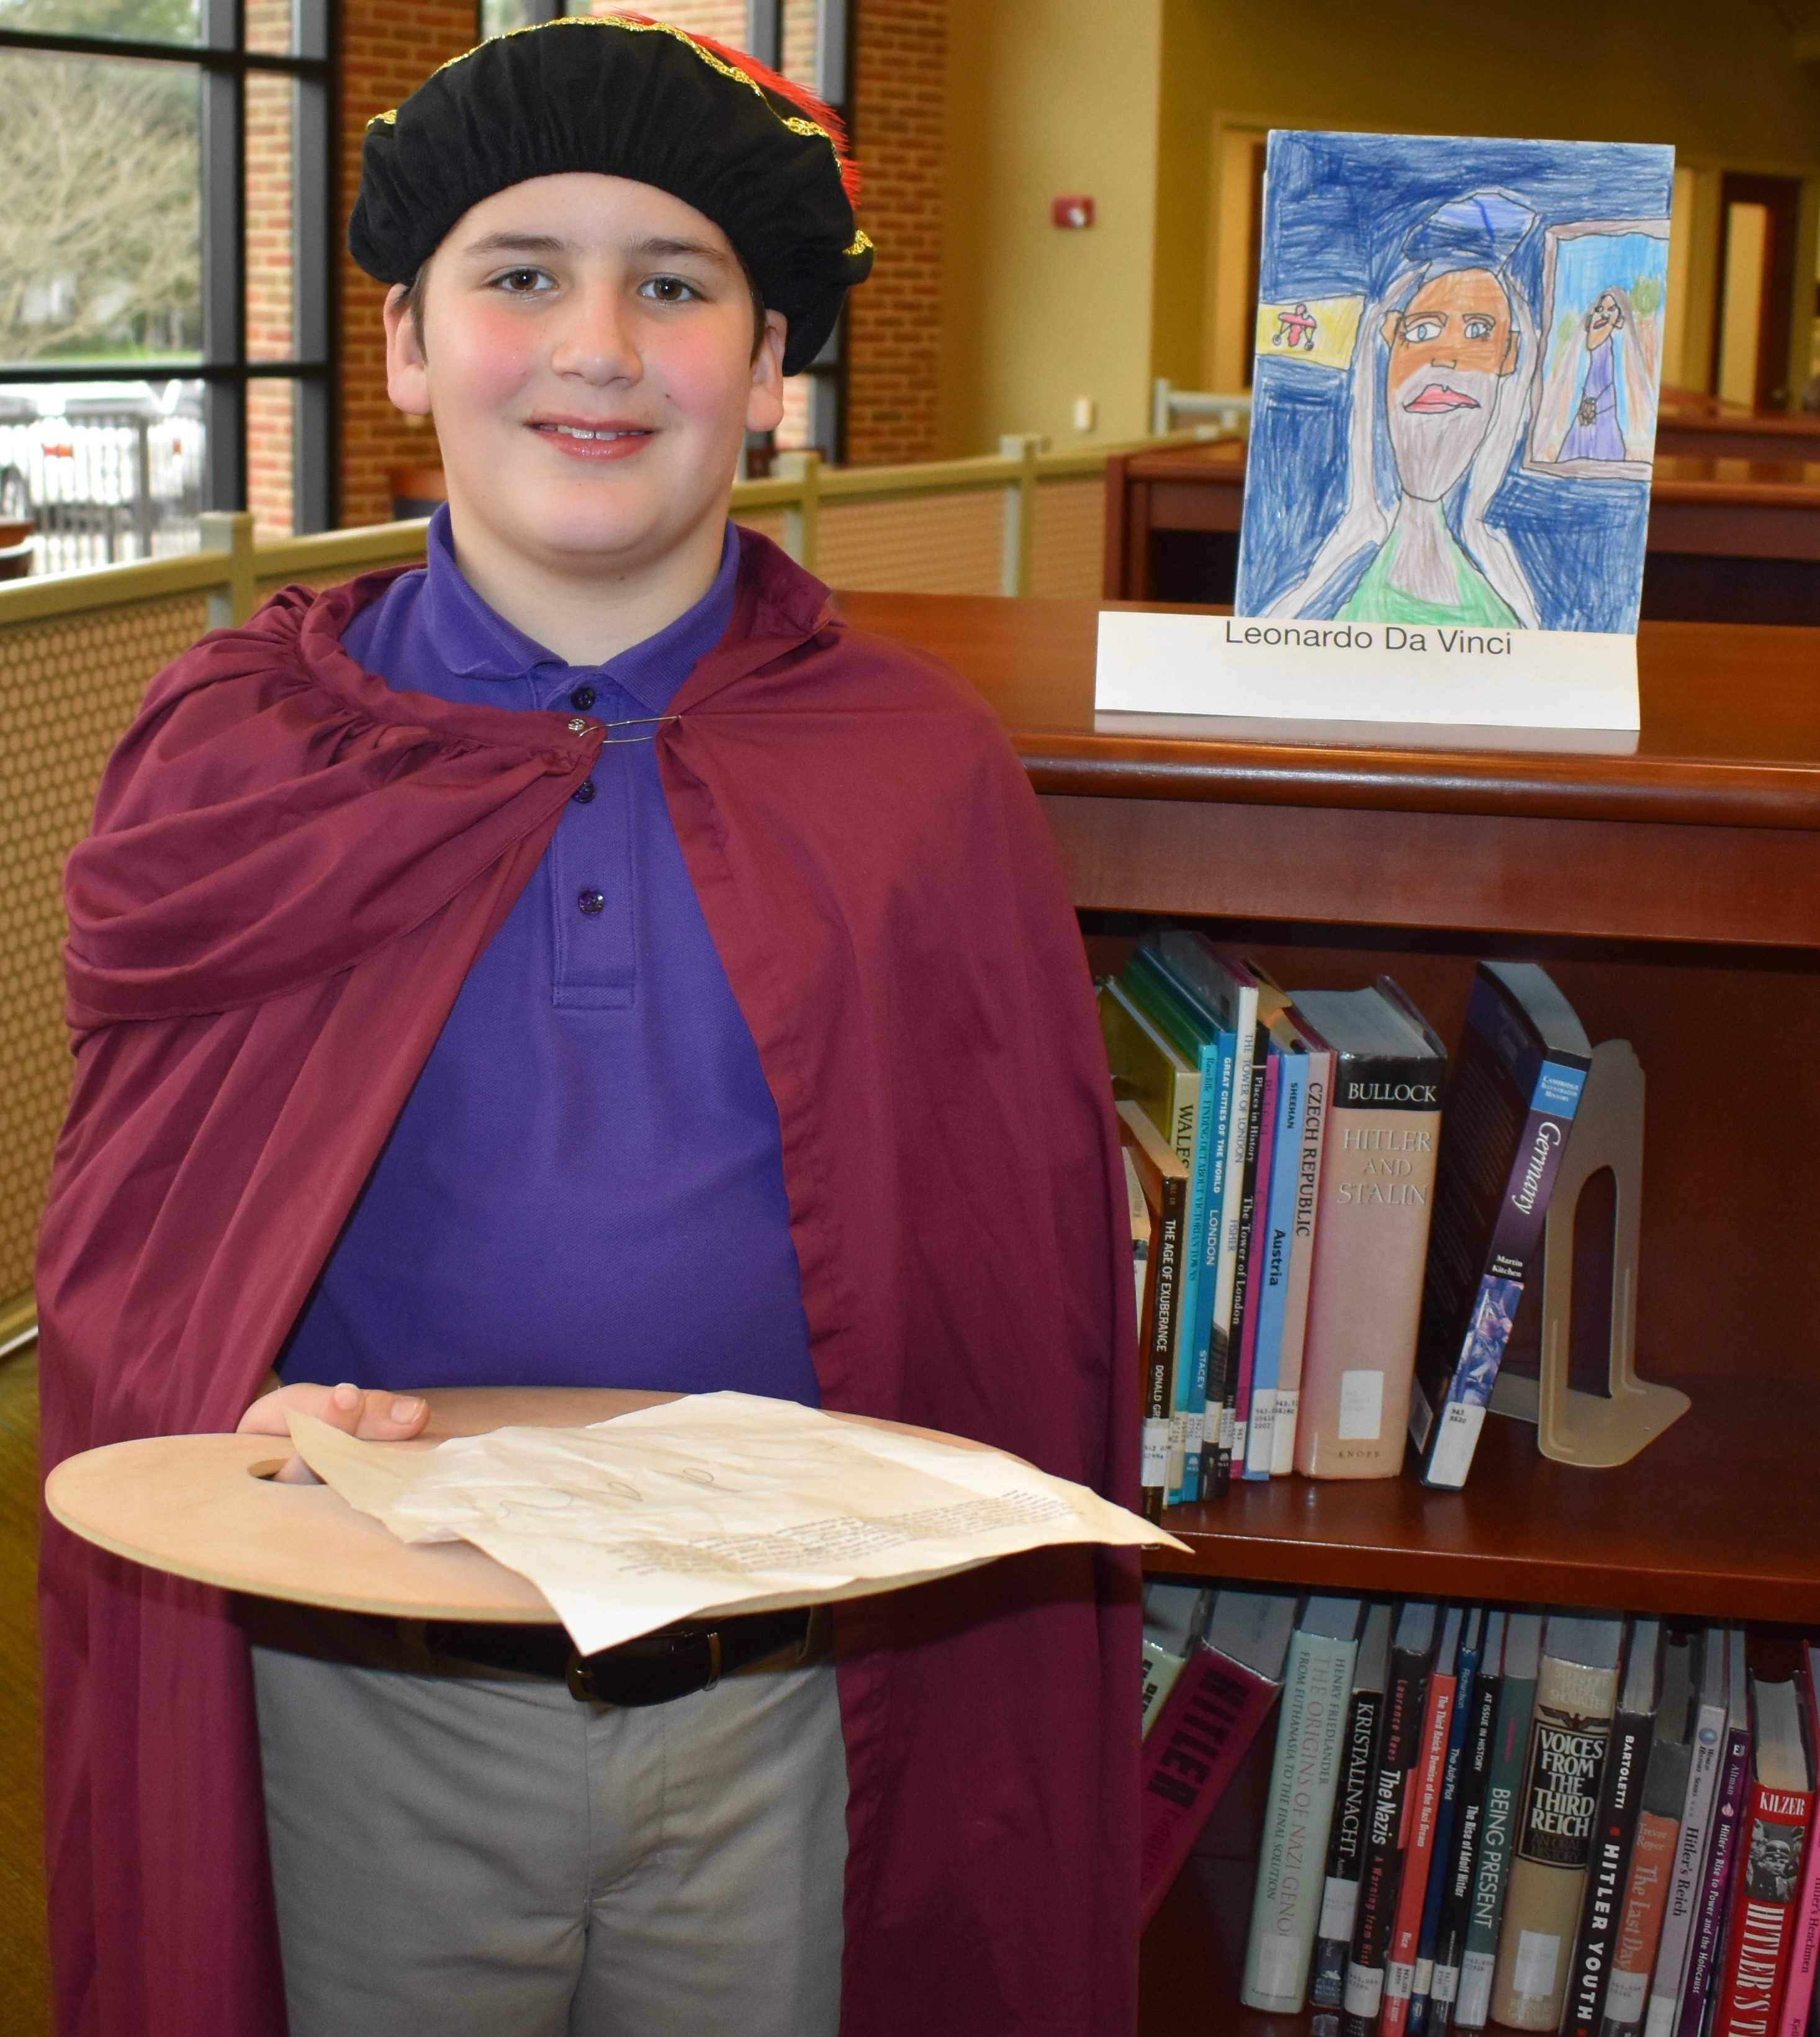 St. Dominic School Brings History to Life